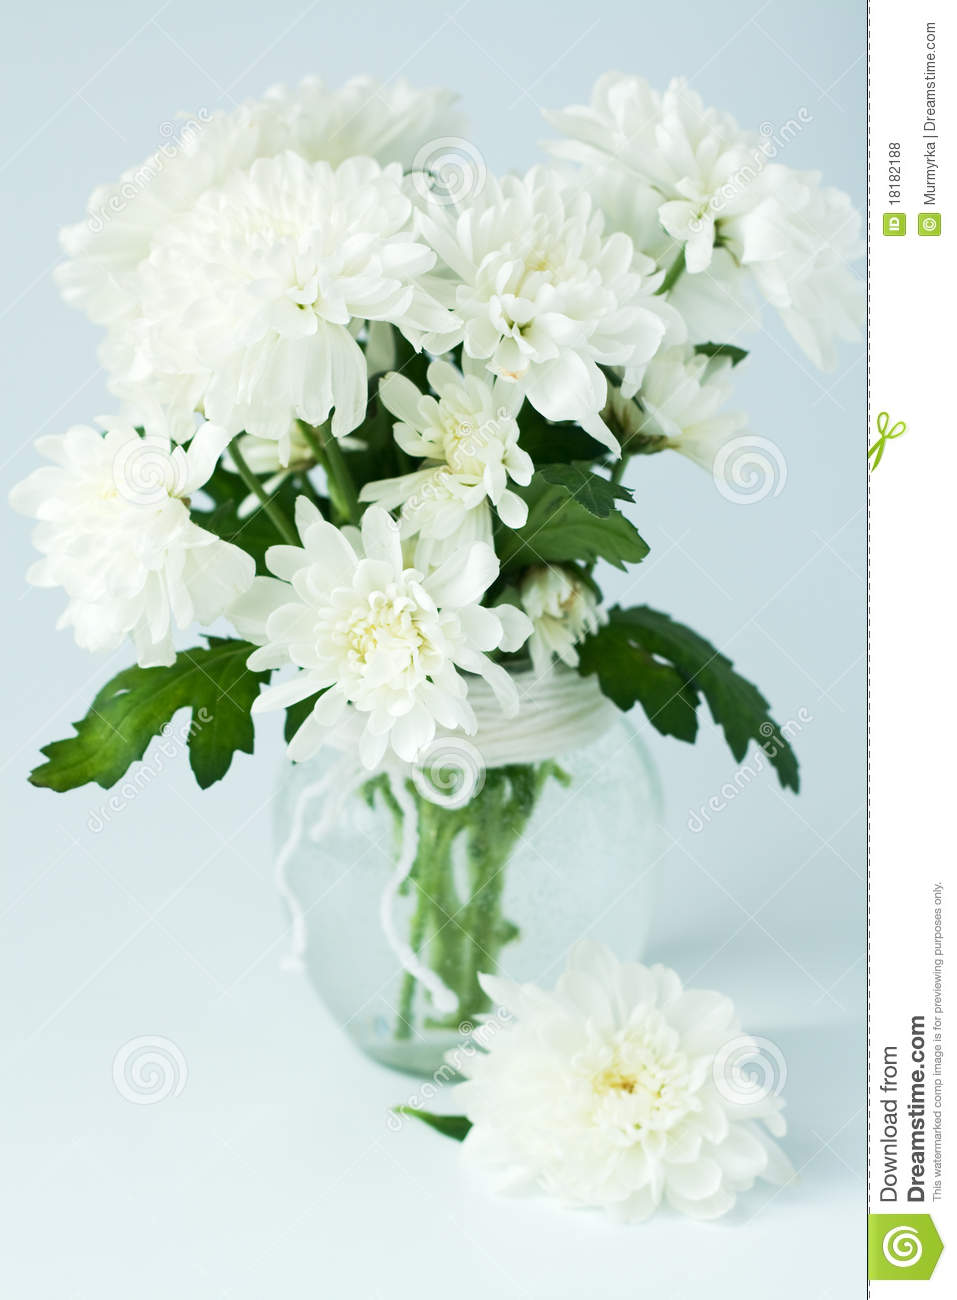 Bouquet Of White Flowers In A Glass Vase Stock Photo Image Of